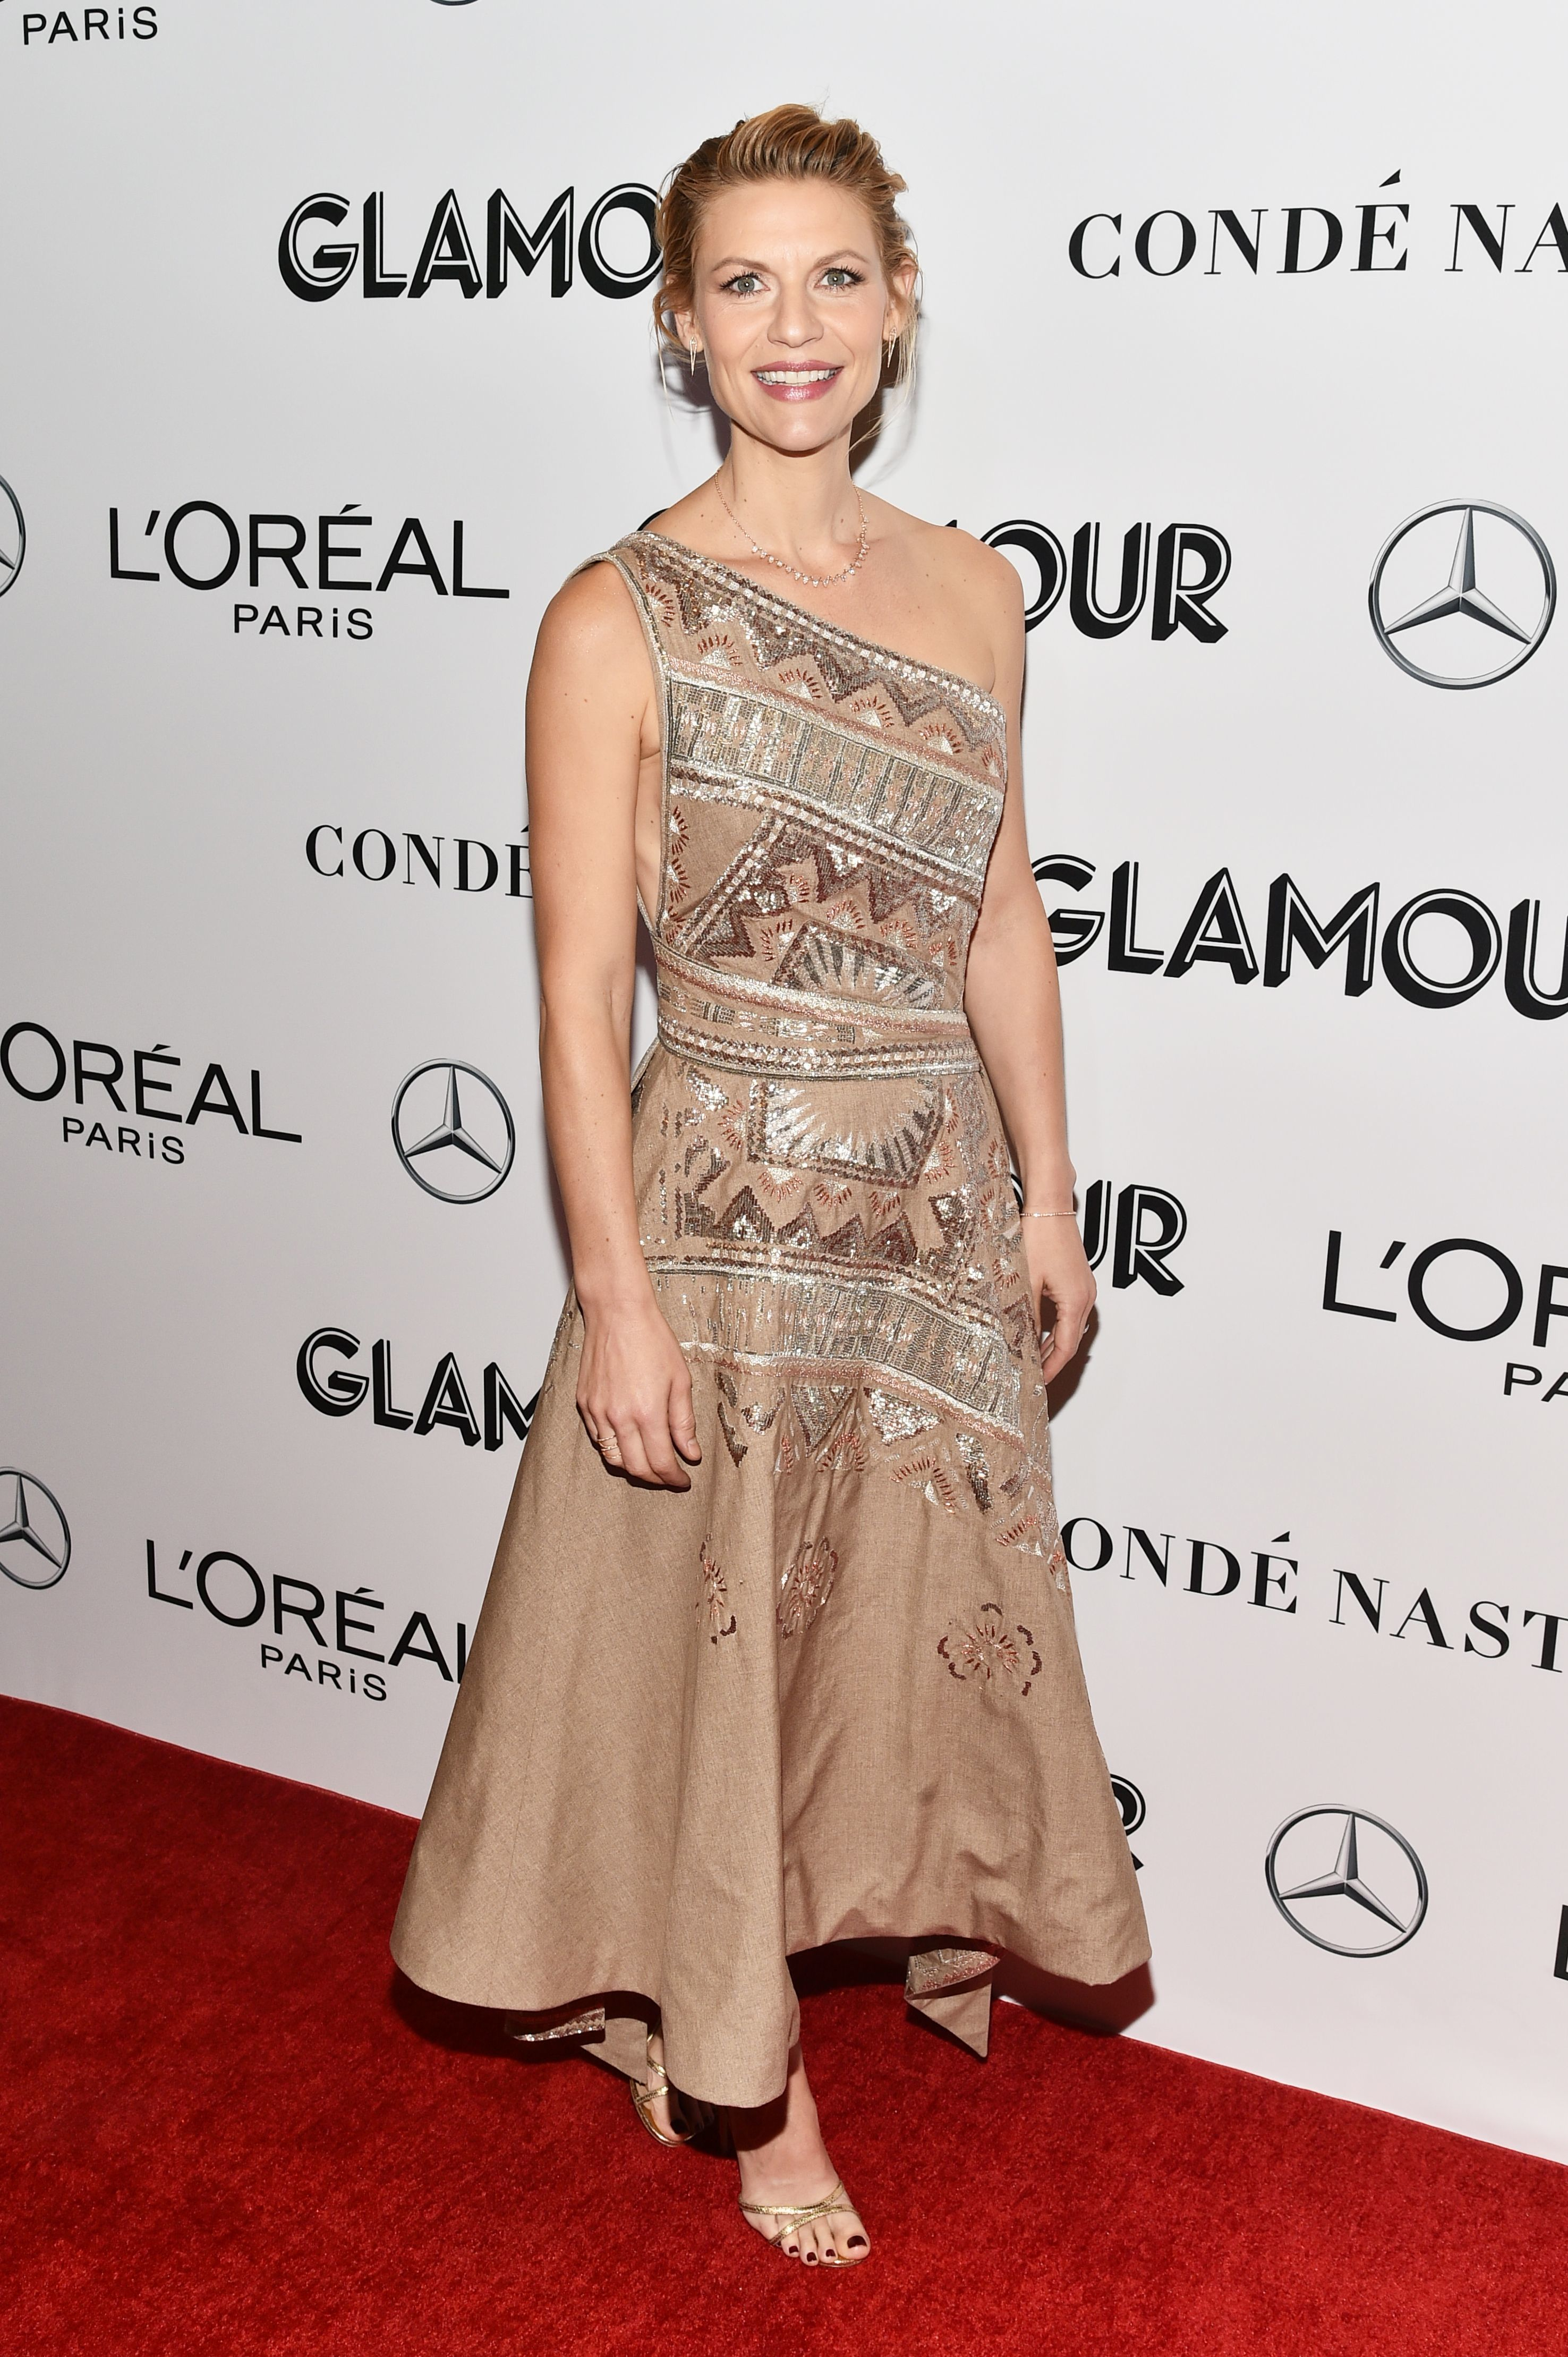 Claire Danes attends the Glamour's 28th annual Woman of the Year Awards in New York City on Nov. 12, 2018.